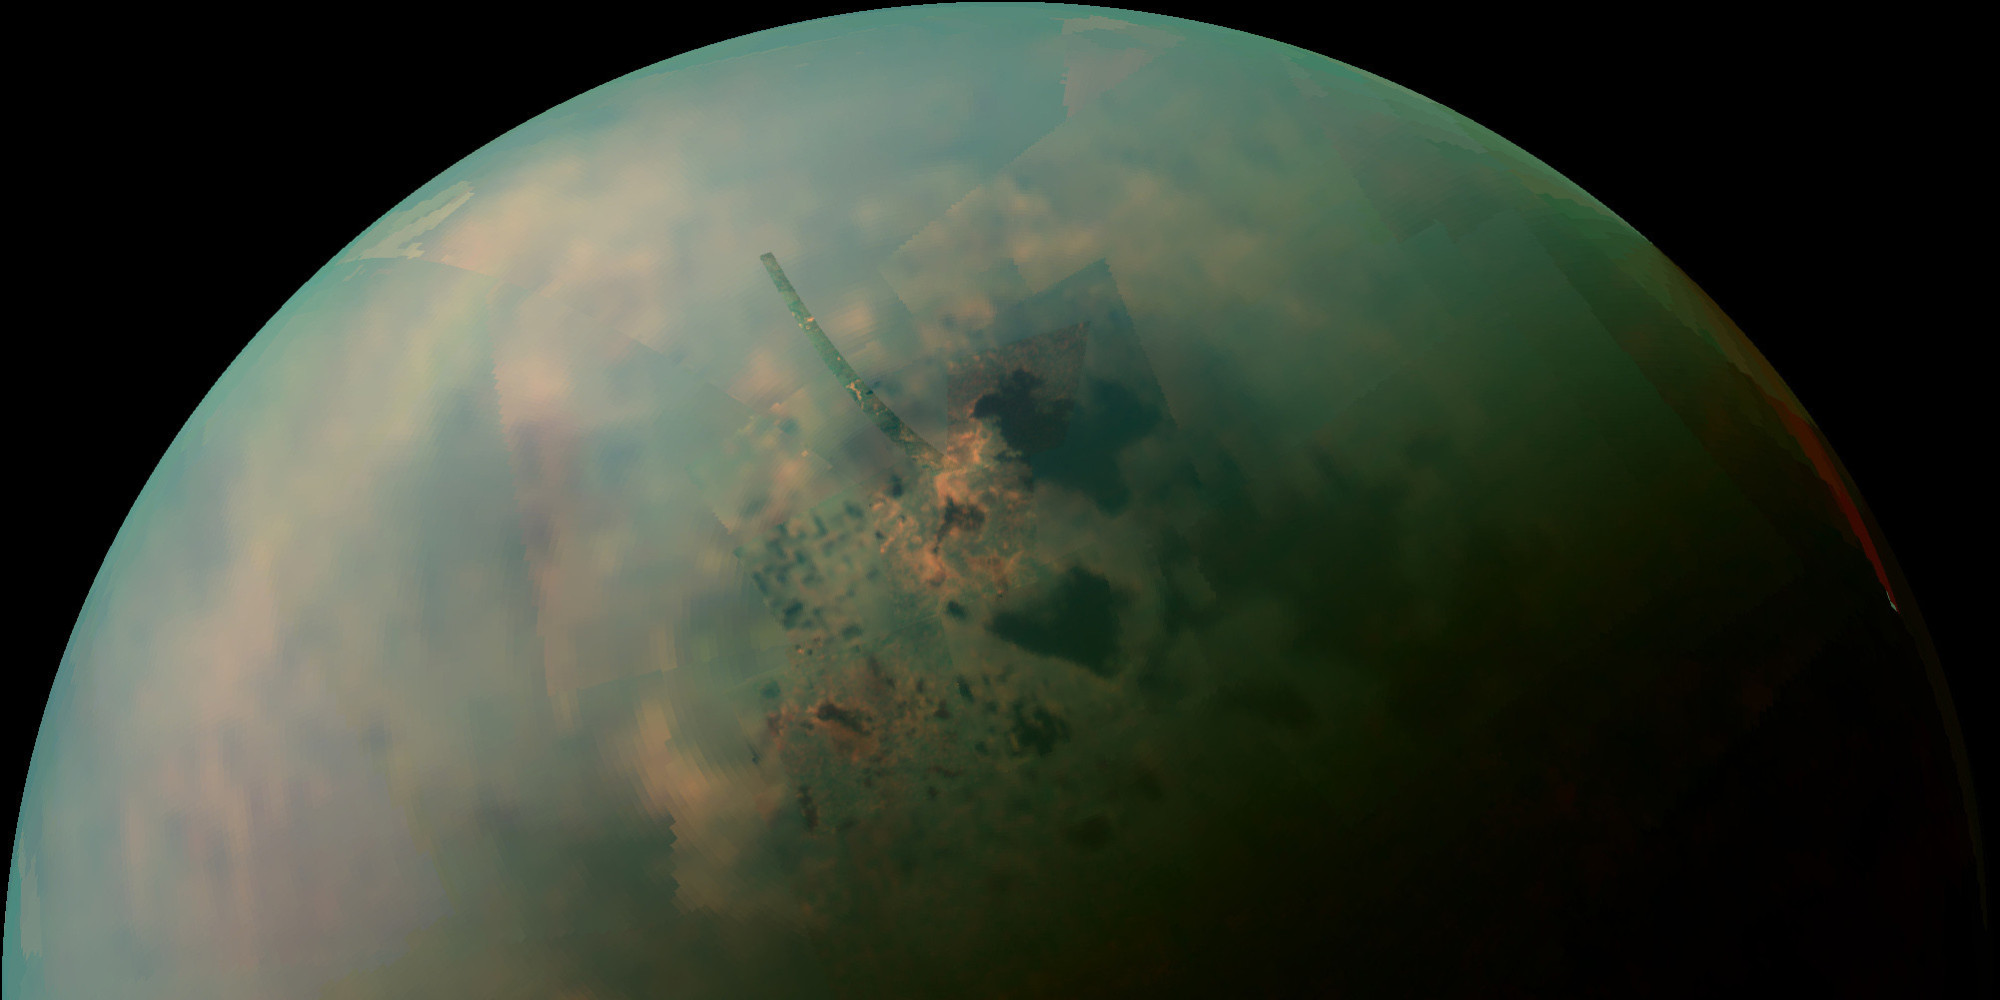 Titan as viewed by Cassini. Darker patches are lake regions. Image credit: NASA/JPL